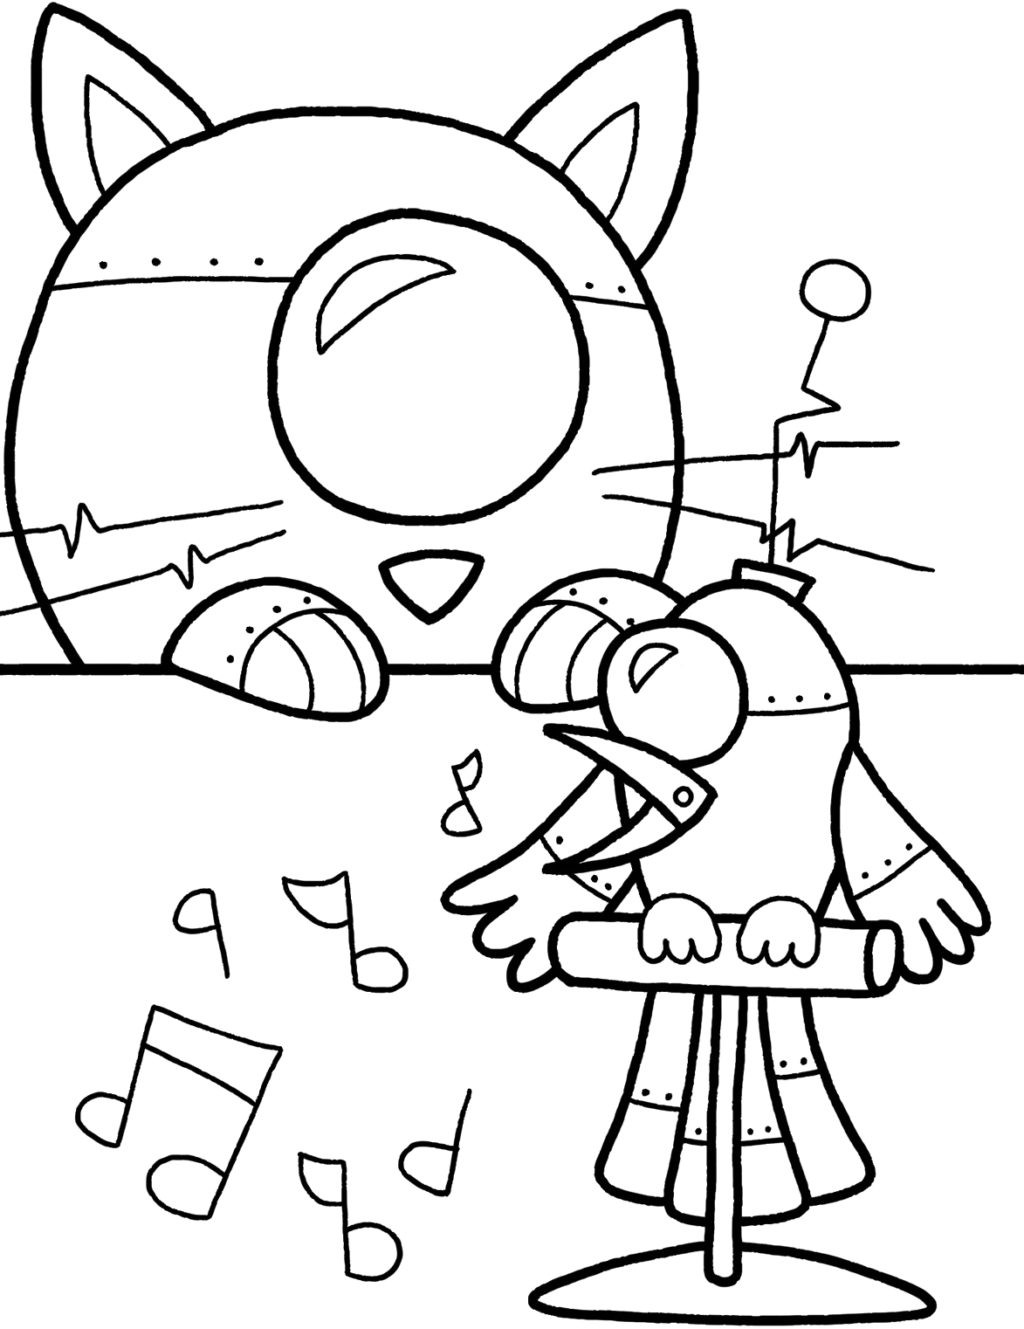 Mighty Pups Coloring Pages  Decepticon Free Colouring Pages